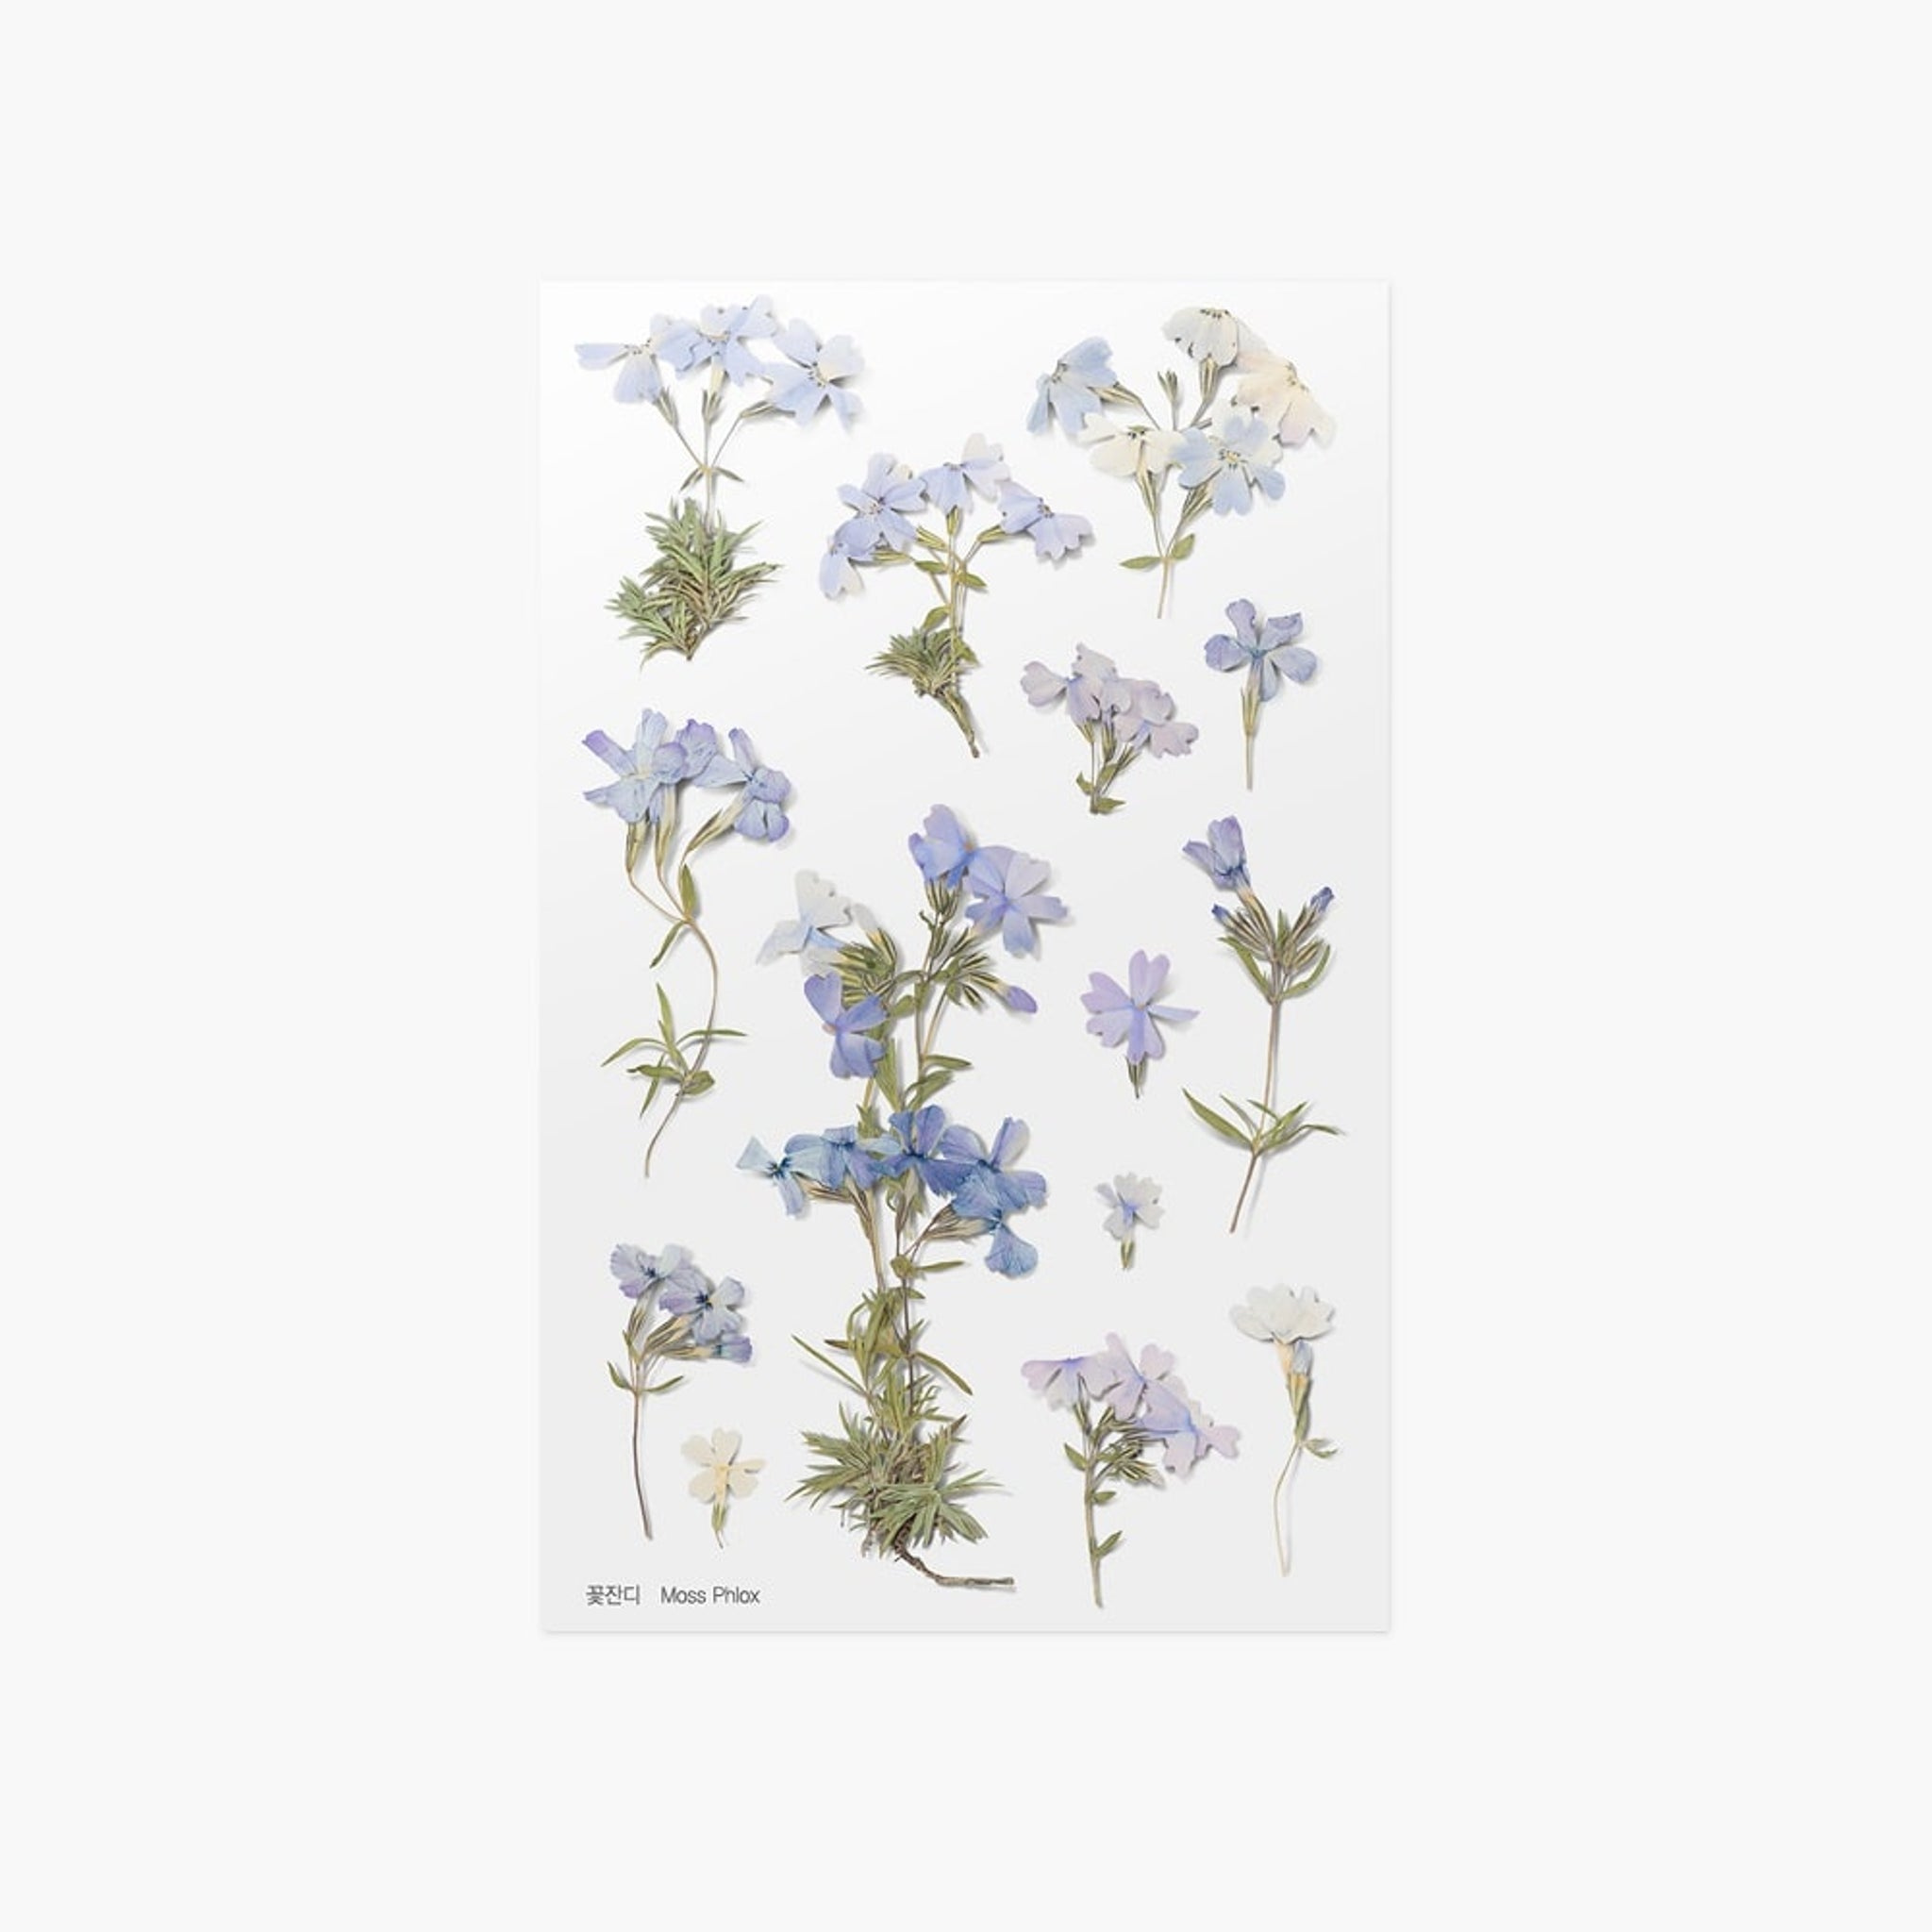 Appree Pressed Flower Sticker Moss Phlox